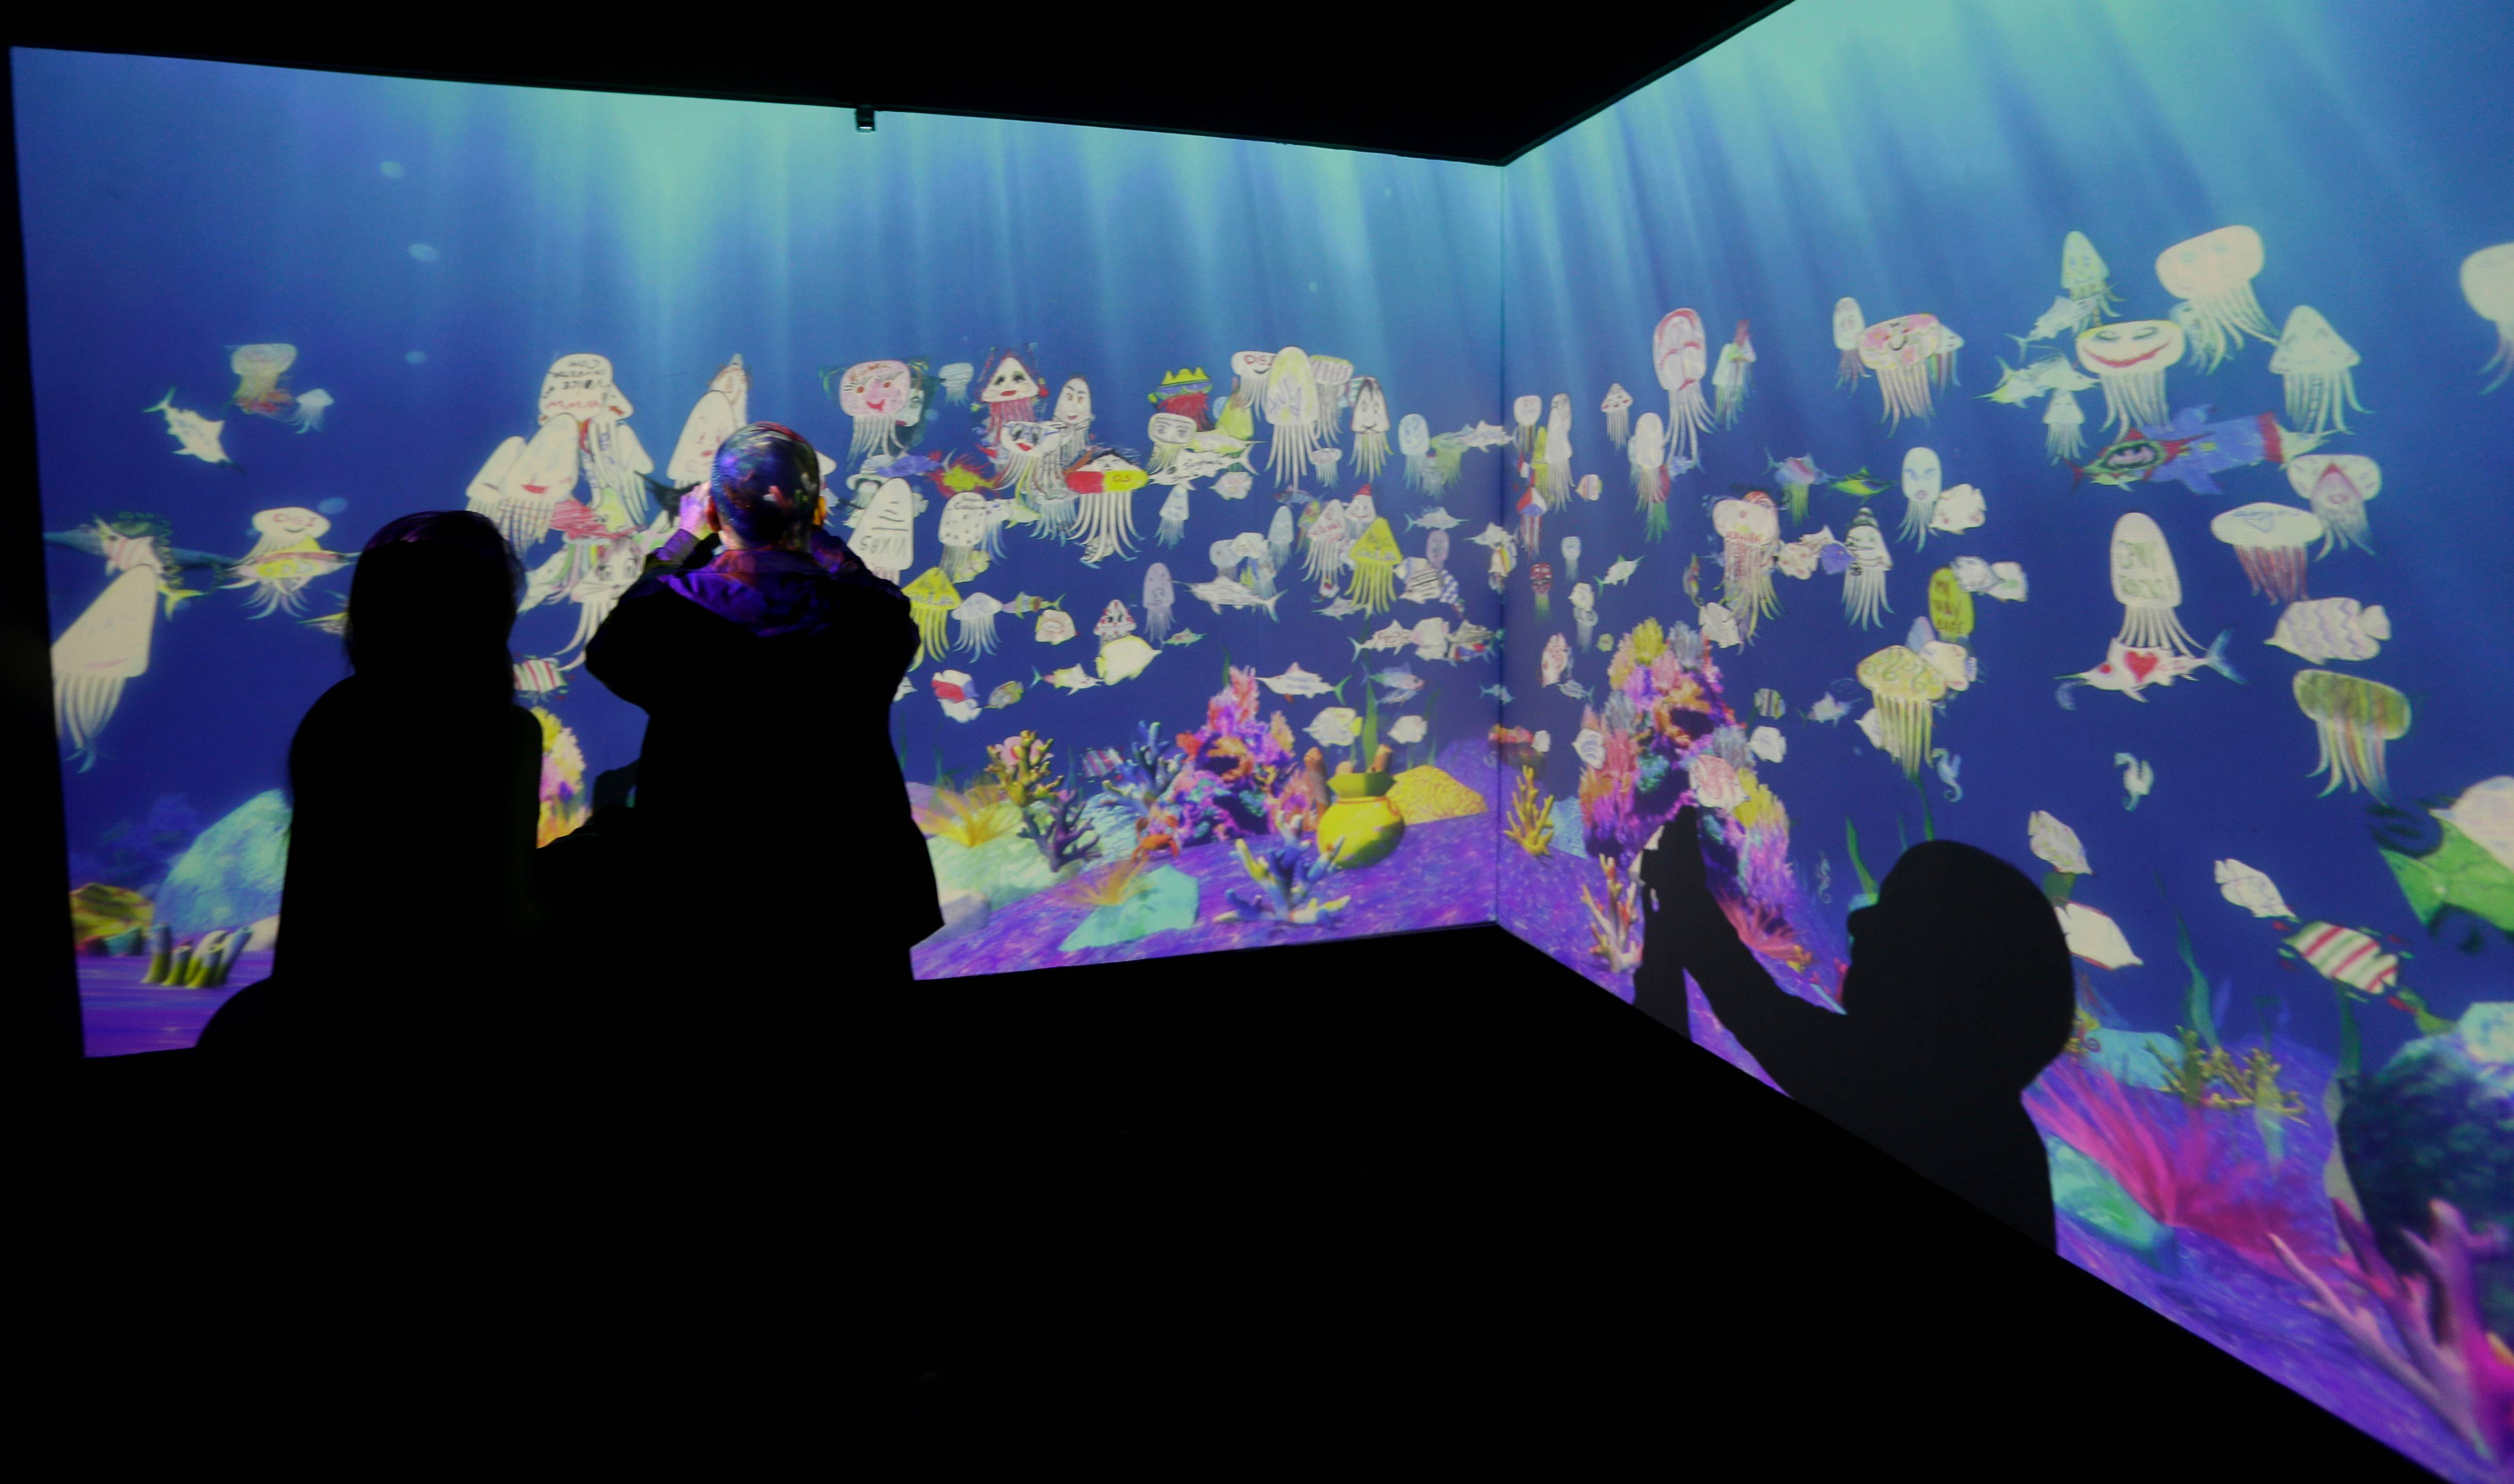 A projected interactive aquarium for kids created by Japanese designers teamwork Time Lab is displayed at the Milan Design Fair.